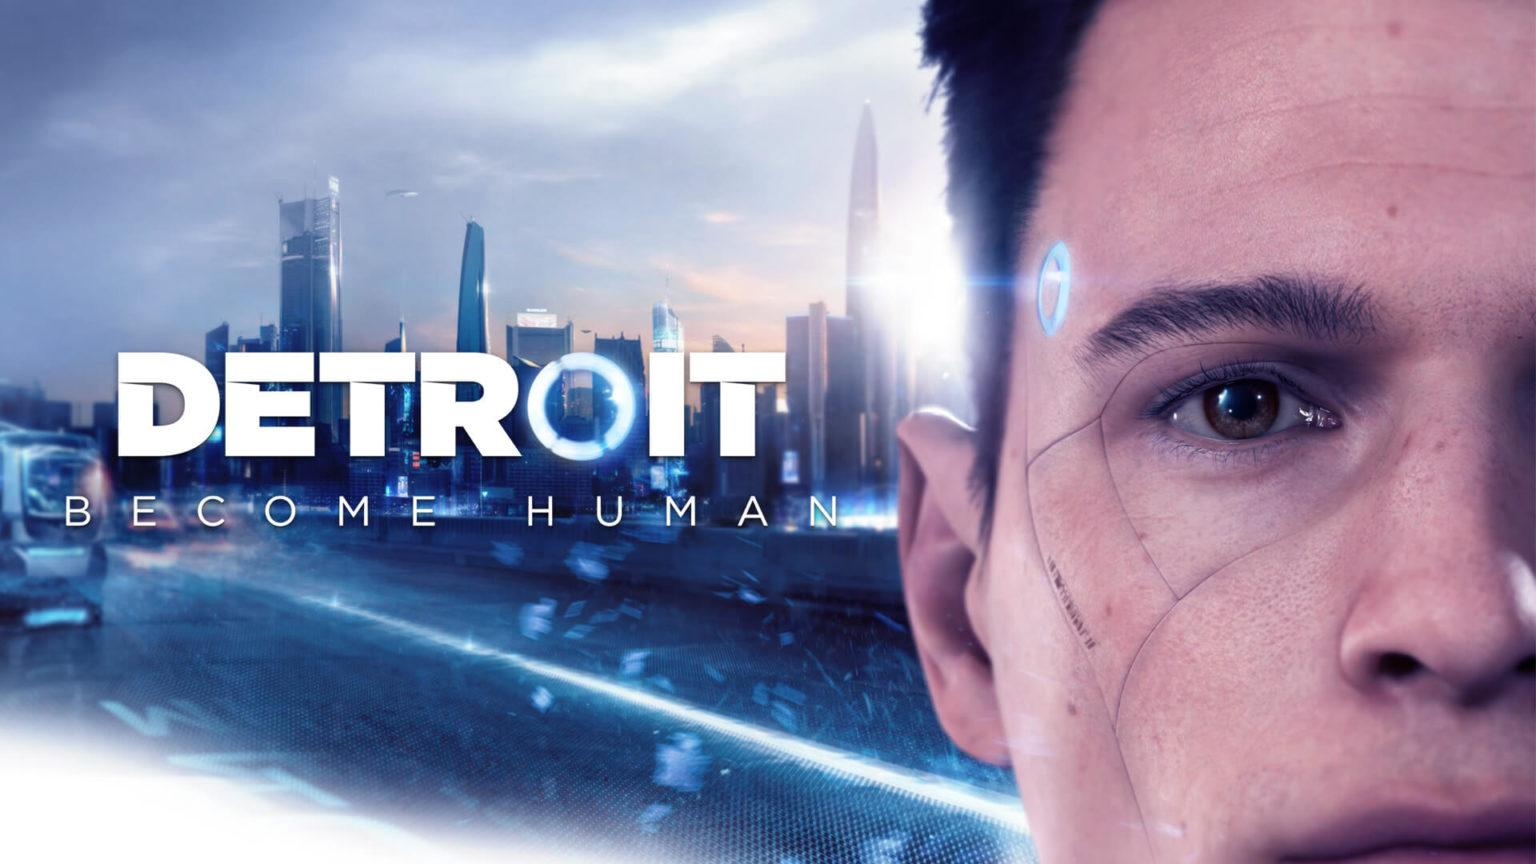 Detroit: Become Human PC Download free full game for windows